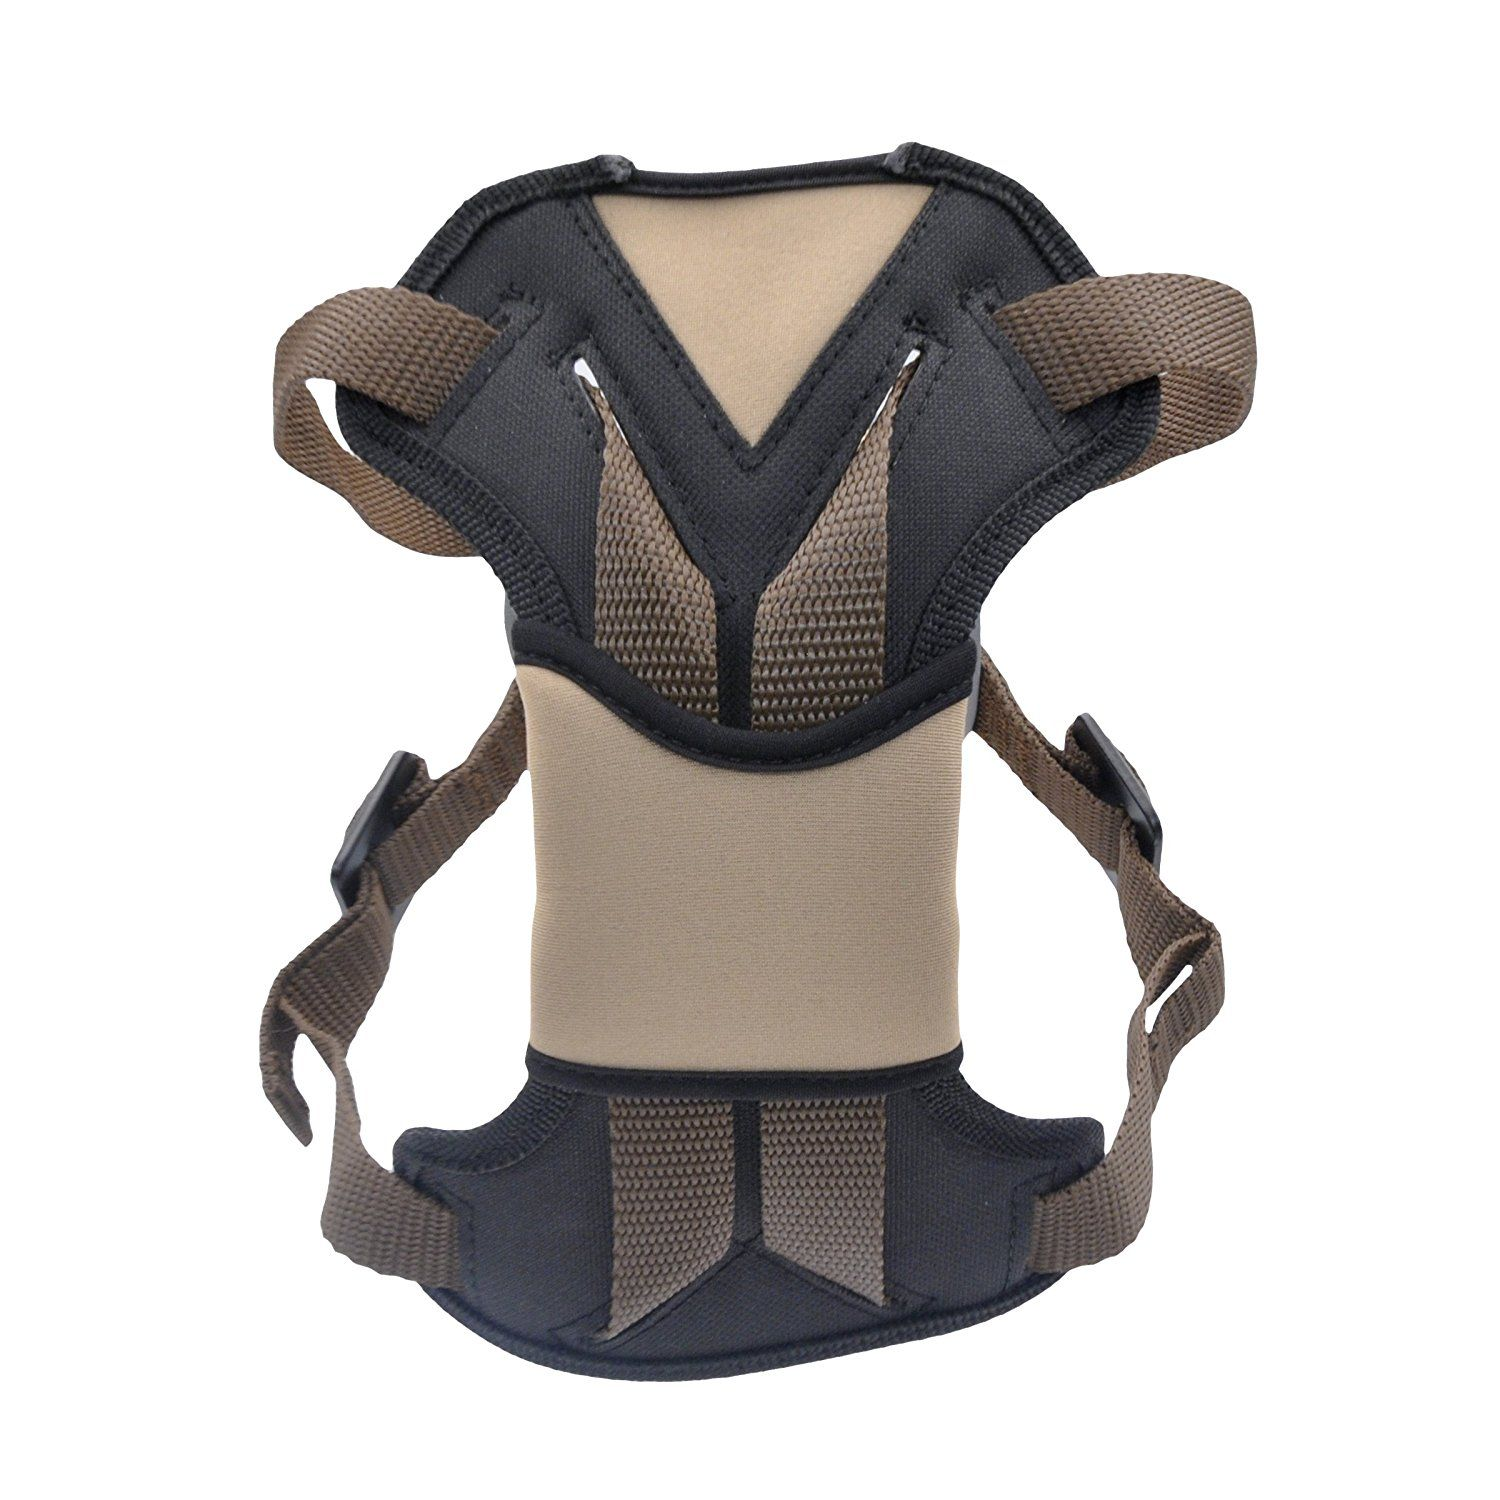 Bergan Safety Auto Harness with Tether, XLarge, Brown